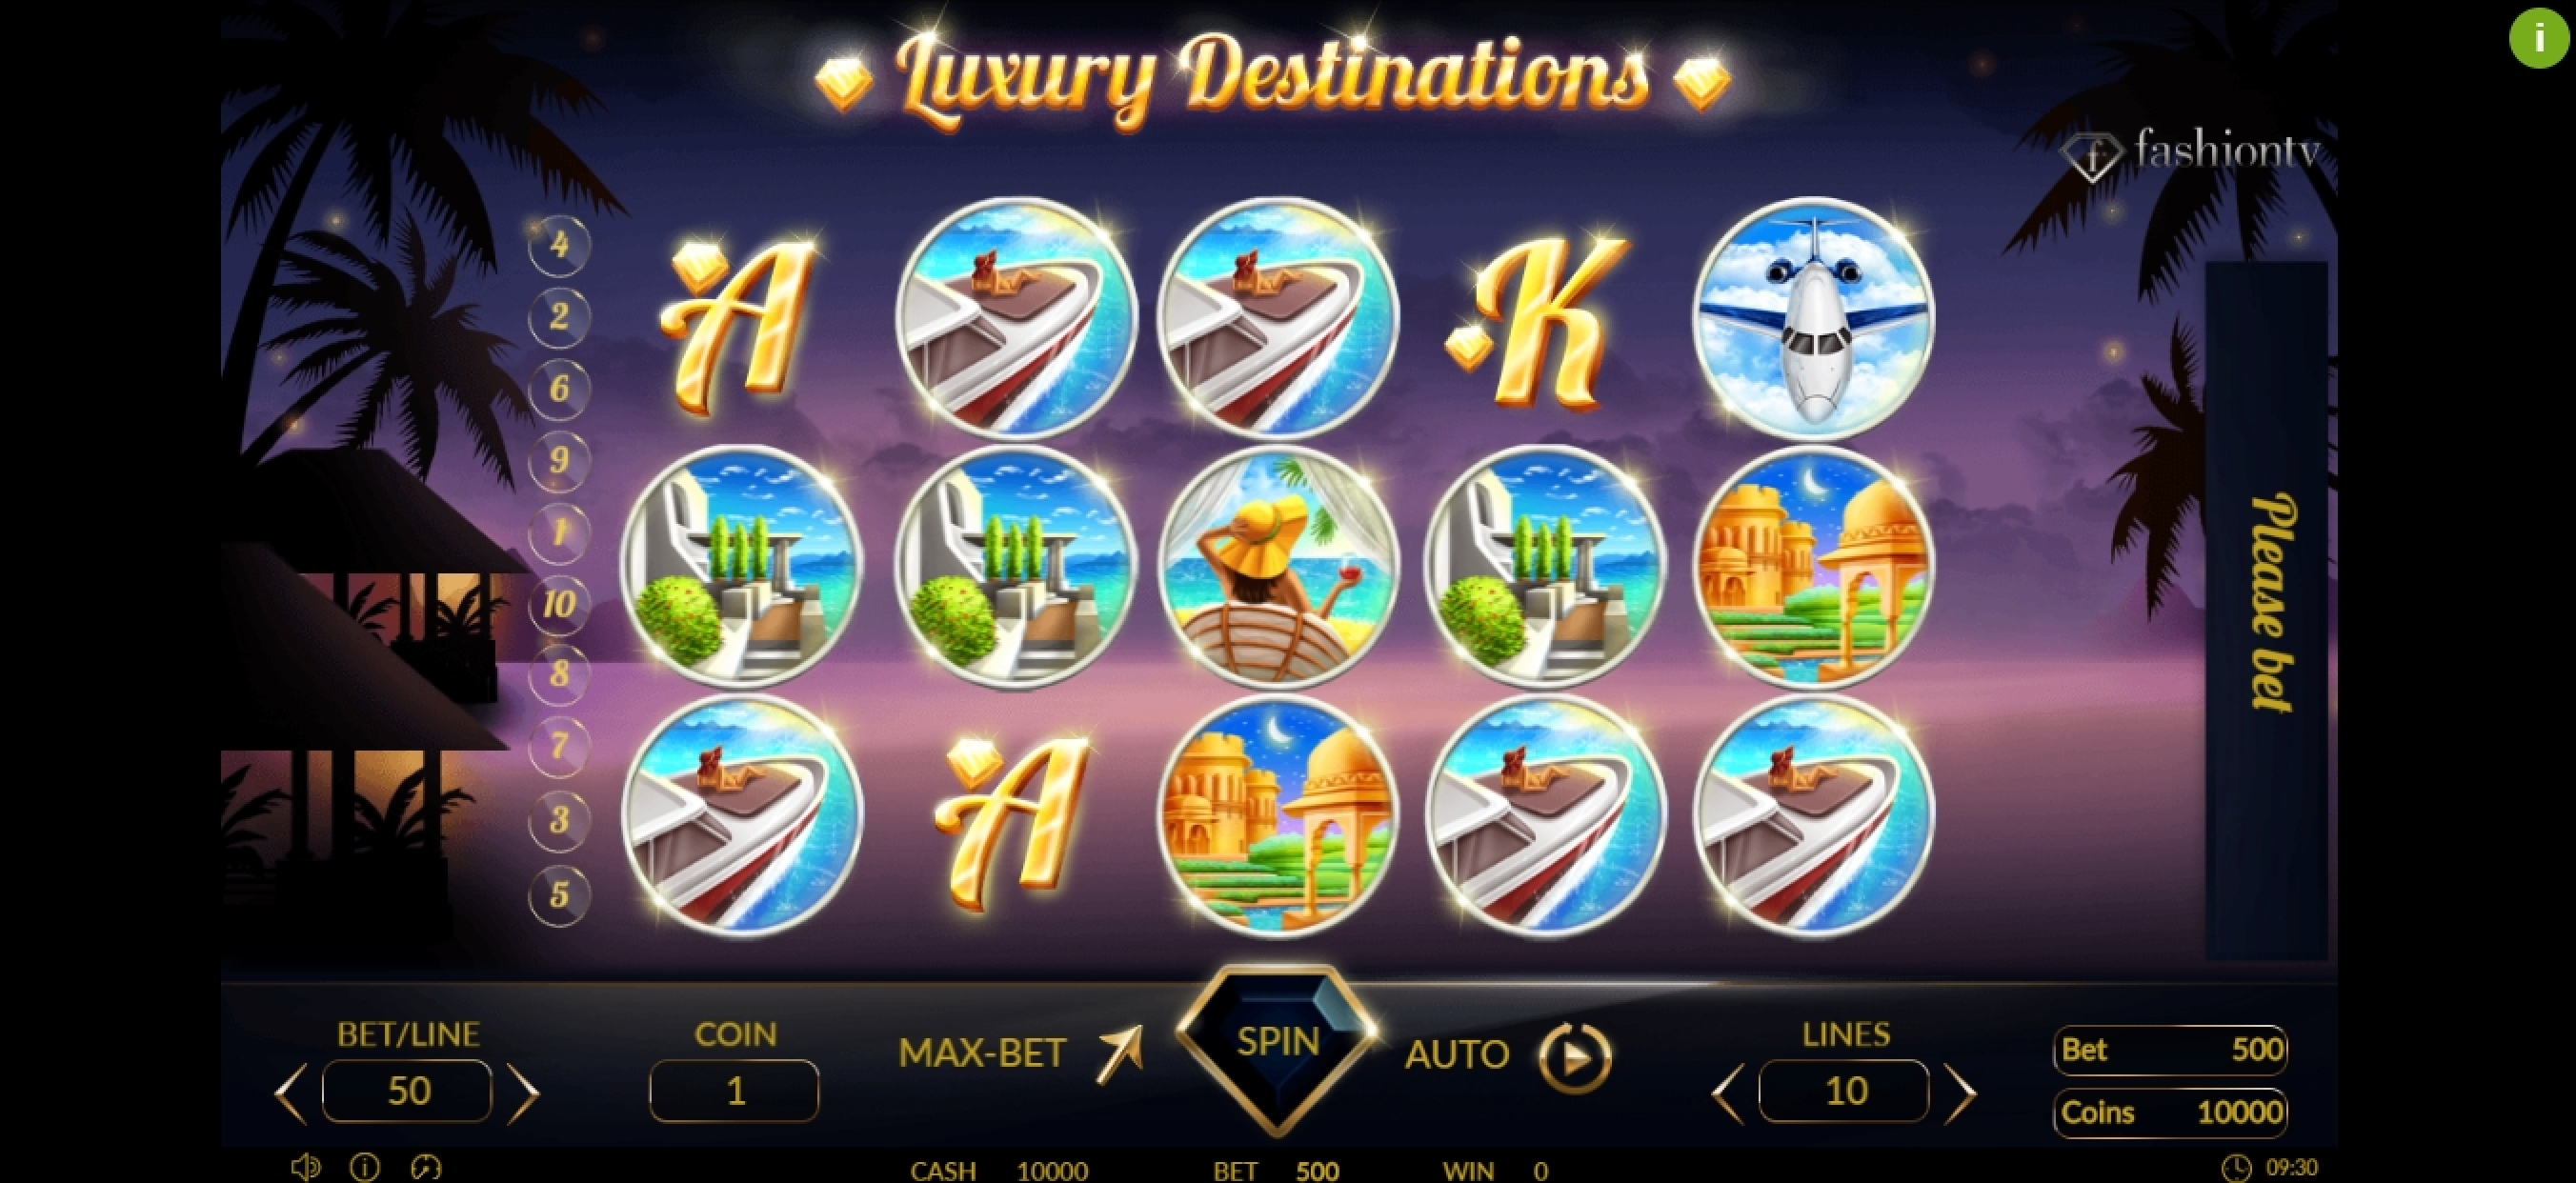 Reels in Luxury Destinations Slot Game by Betconstruct